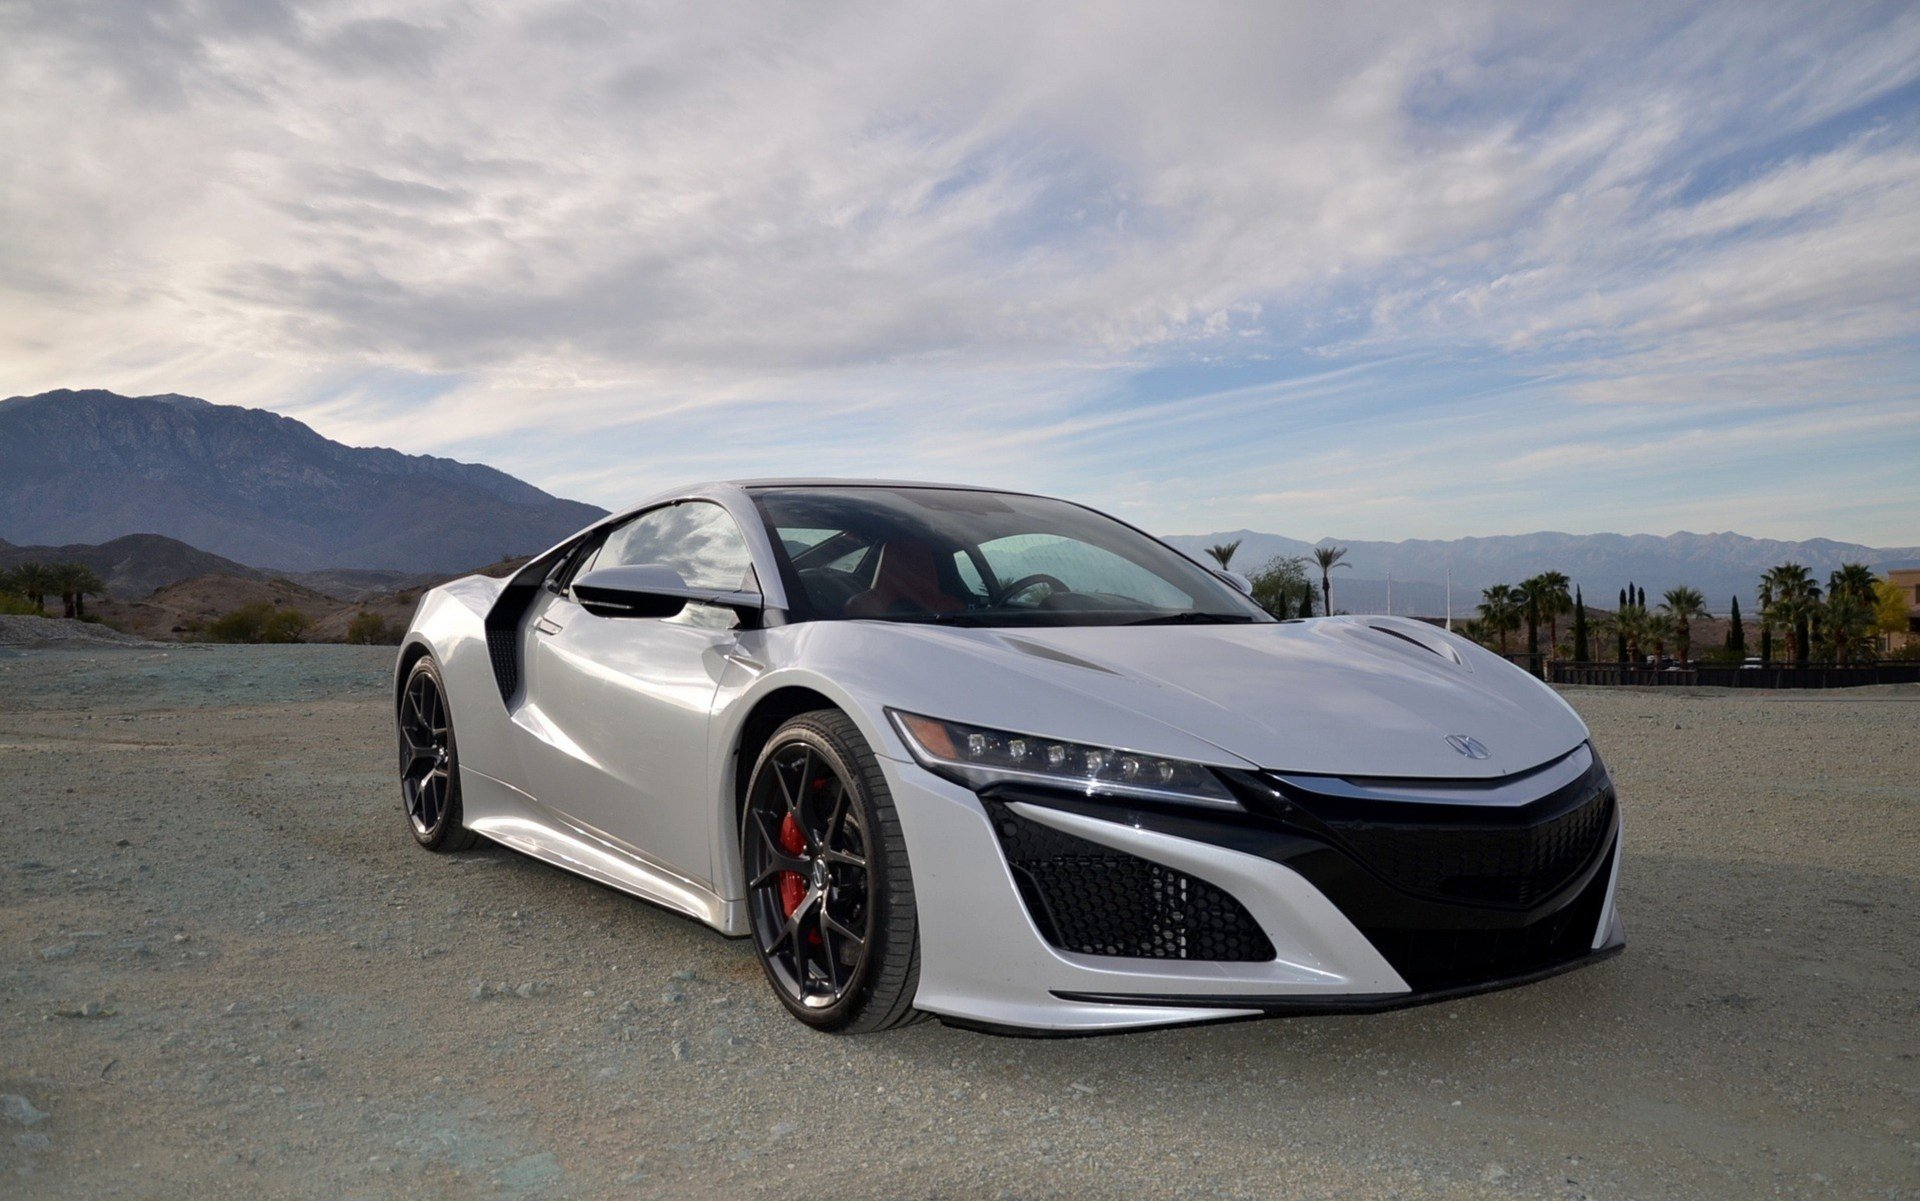 Latest Acura Nsx Wallpapers Images Photos Pictures Backgrounds Free Download